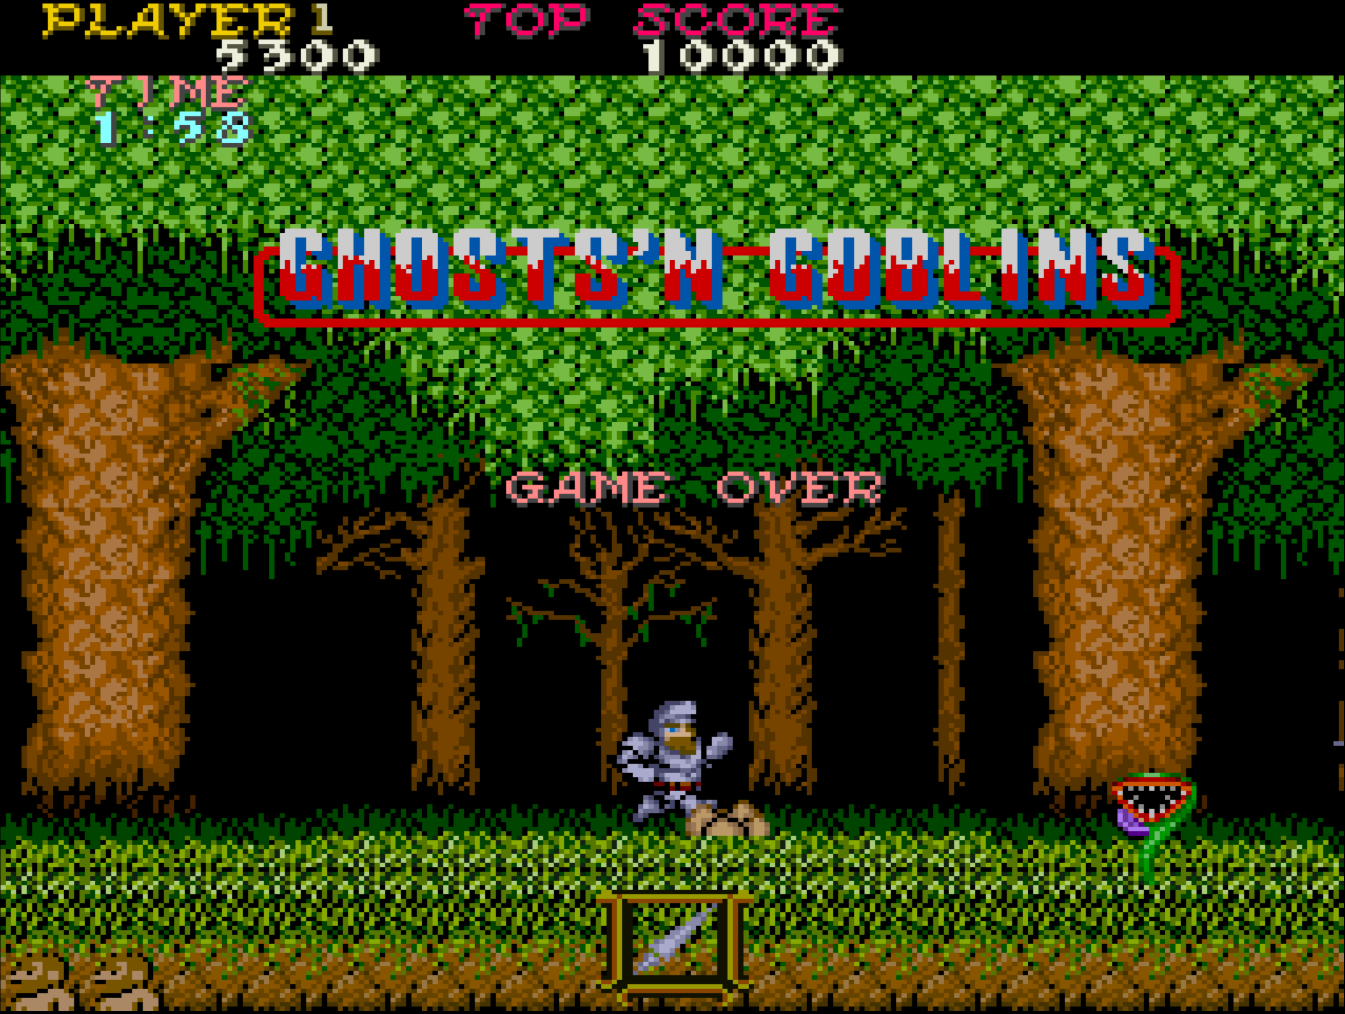 MiSTer Ghosts 'n Goblins Core Released: Things just got serious.